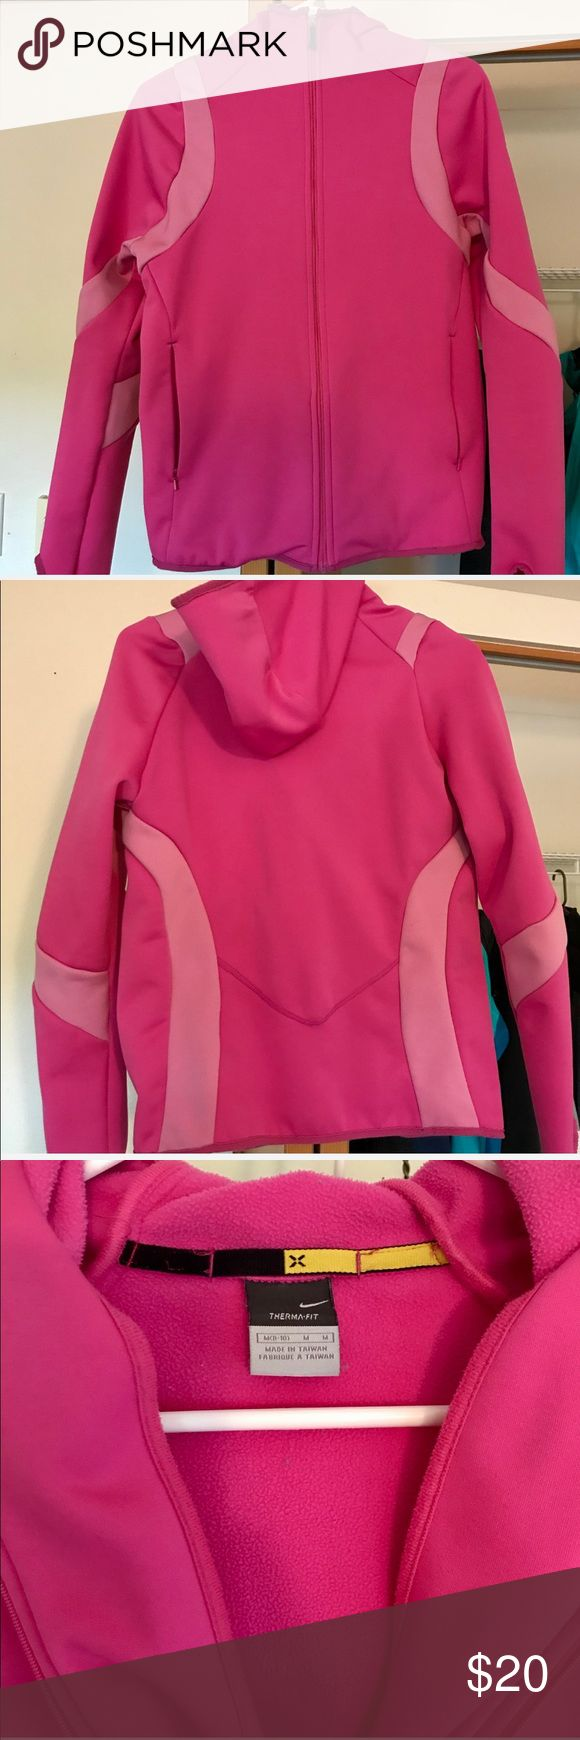 Nike pink zip up Used a few times, lots of life left Nike pink thermal fit zip up with hood. Has zipper pockets in front and thumb holes in sleeve. Size M but feels like a S to me. Nike Sweaters